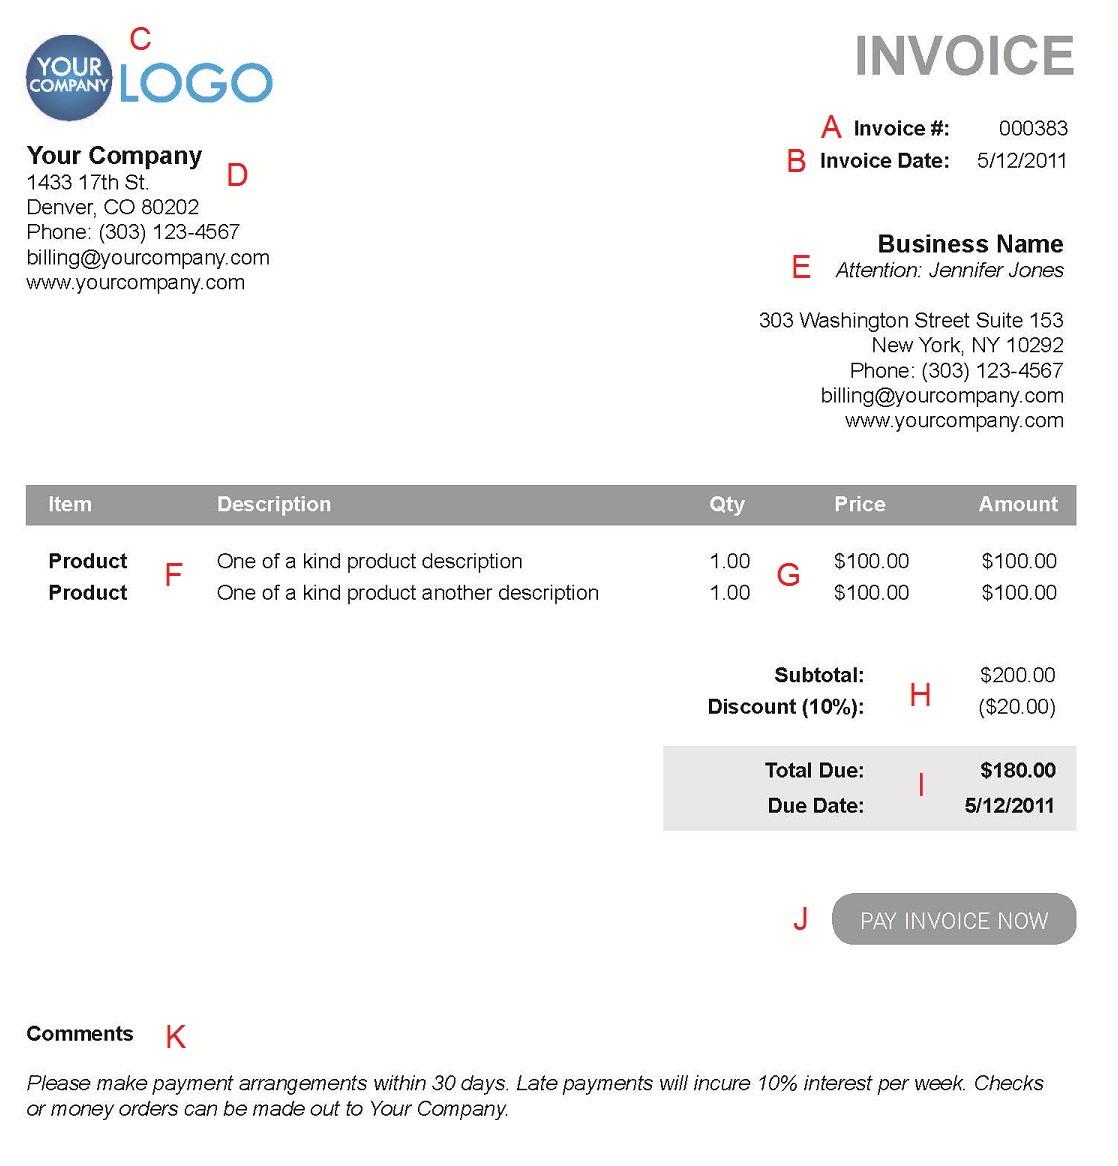 Coolmathgamesus  Ravishing The  Different Sections Of An Electronic Payment Invoice With Entrancing A  With Comely Return Receipt Certified Mail Also Macys Receipt In Addition Rent Receipt Template Doc And Registered Mail Return Receipt As Well As Refund Receipt Template Additionally Guitar Center Return Policy No Receipt From Paysimplecom With Coolmathgamesus  Entrancing The  Different Sections Of An Electronic Payment Invoice With Comely A  And Ravishing Return Receipt Certified Mail Also Macys Receipt In Addition Rent Receipt Template Doc From Paysimplecom